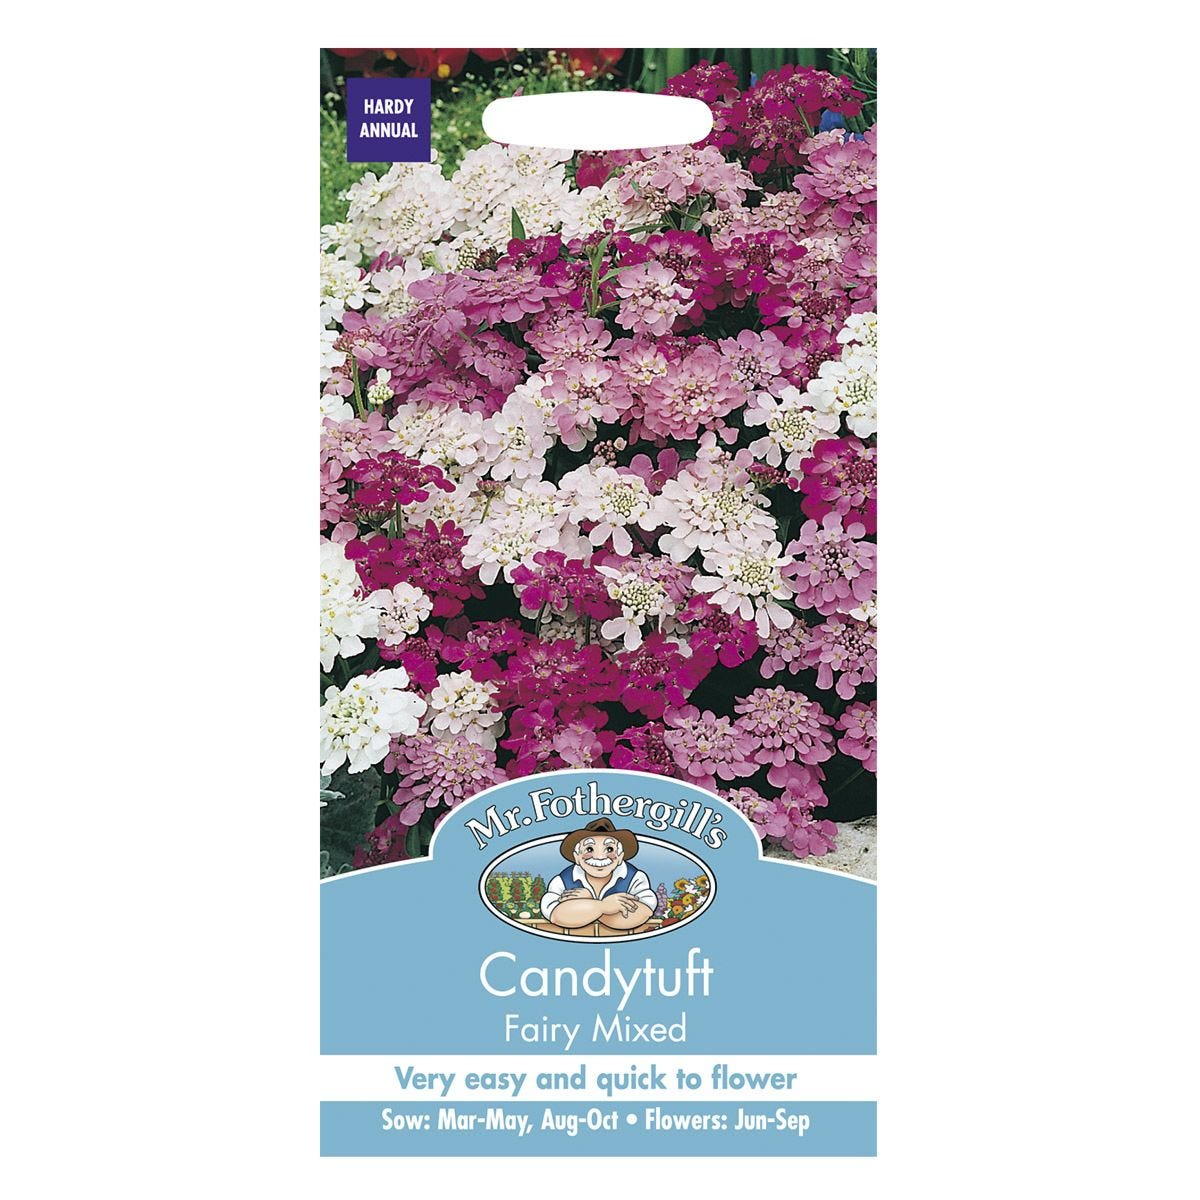 Mr Fothergill's Candytuft Fairy Mixed Seeds